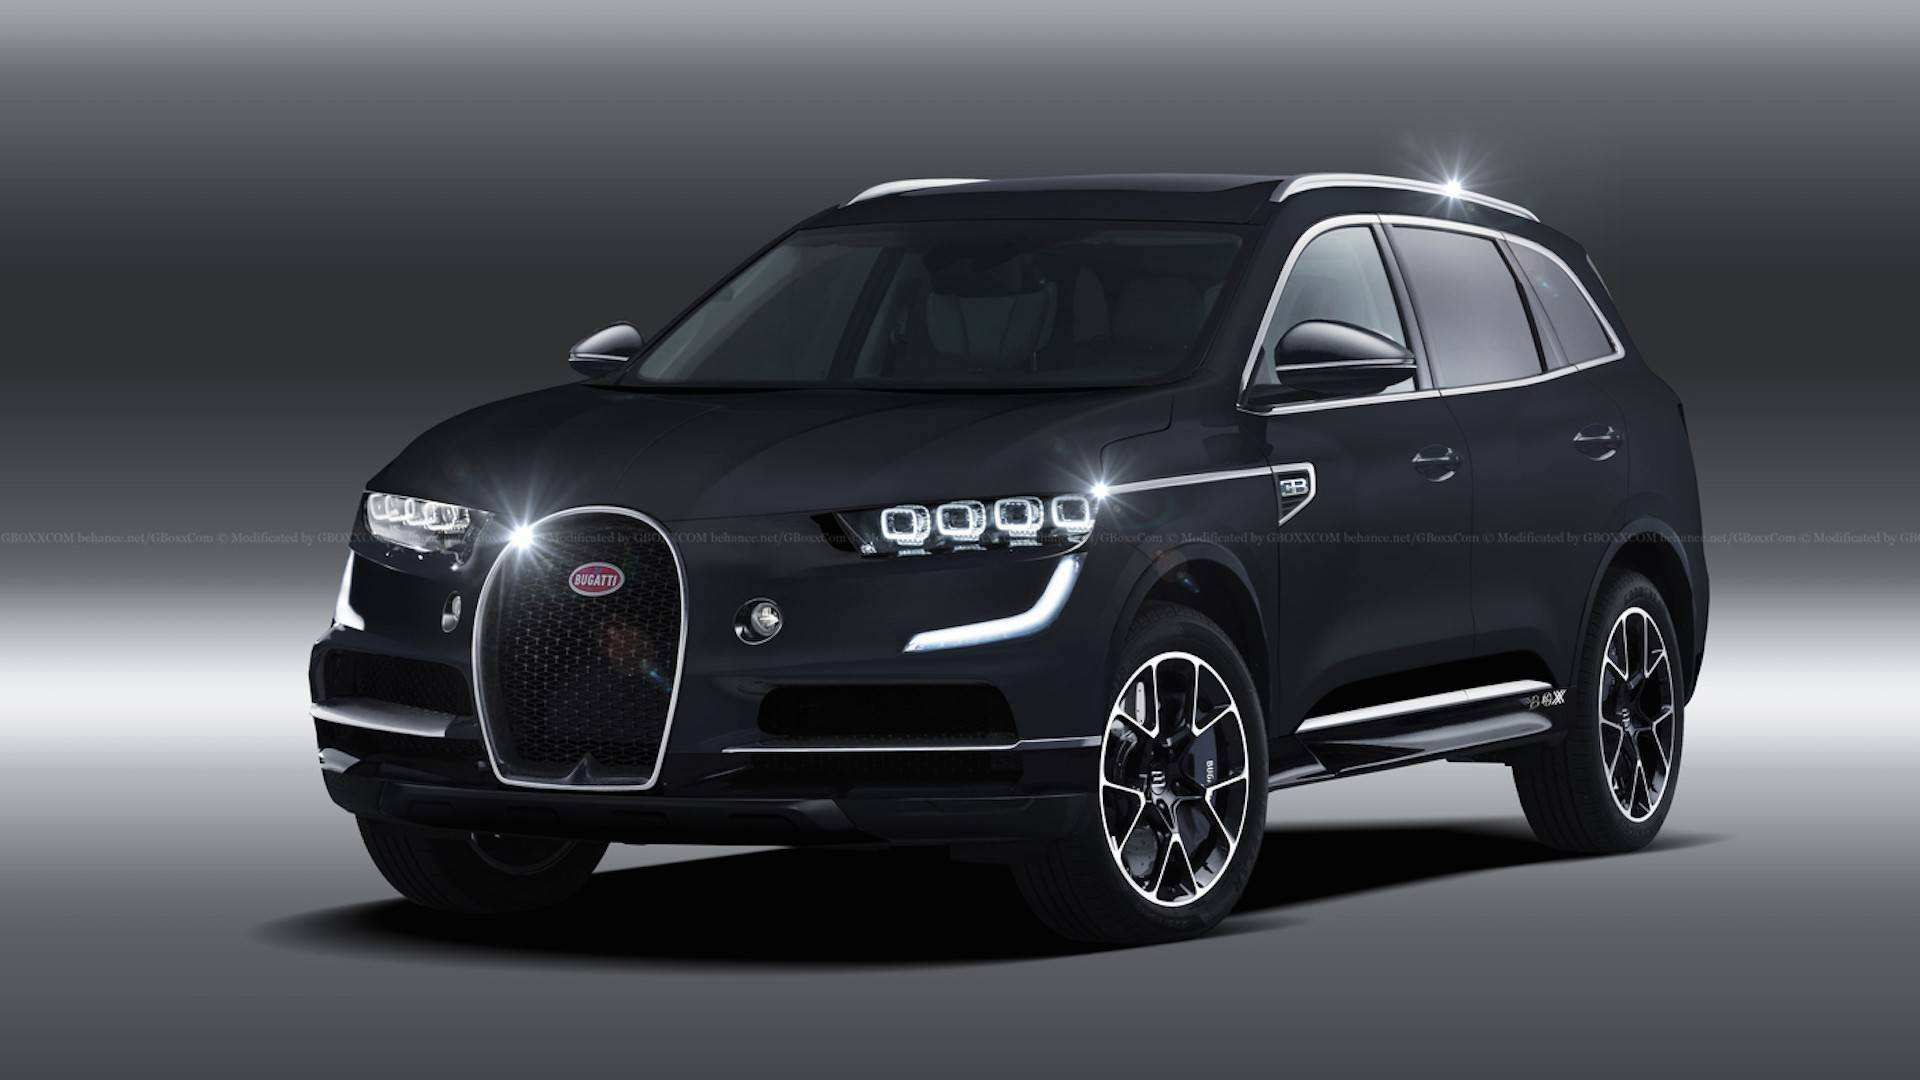 72 The Bugatti Galibier 2020 Price and Review